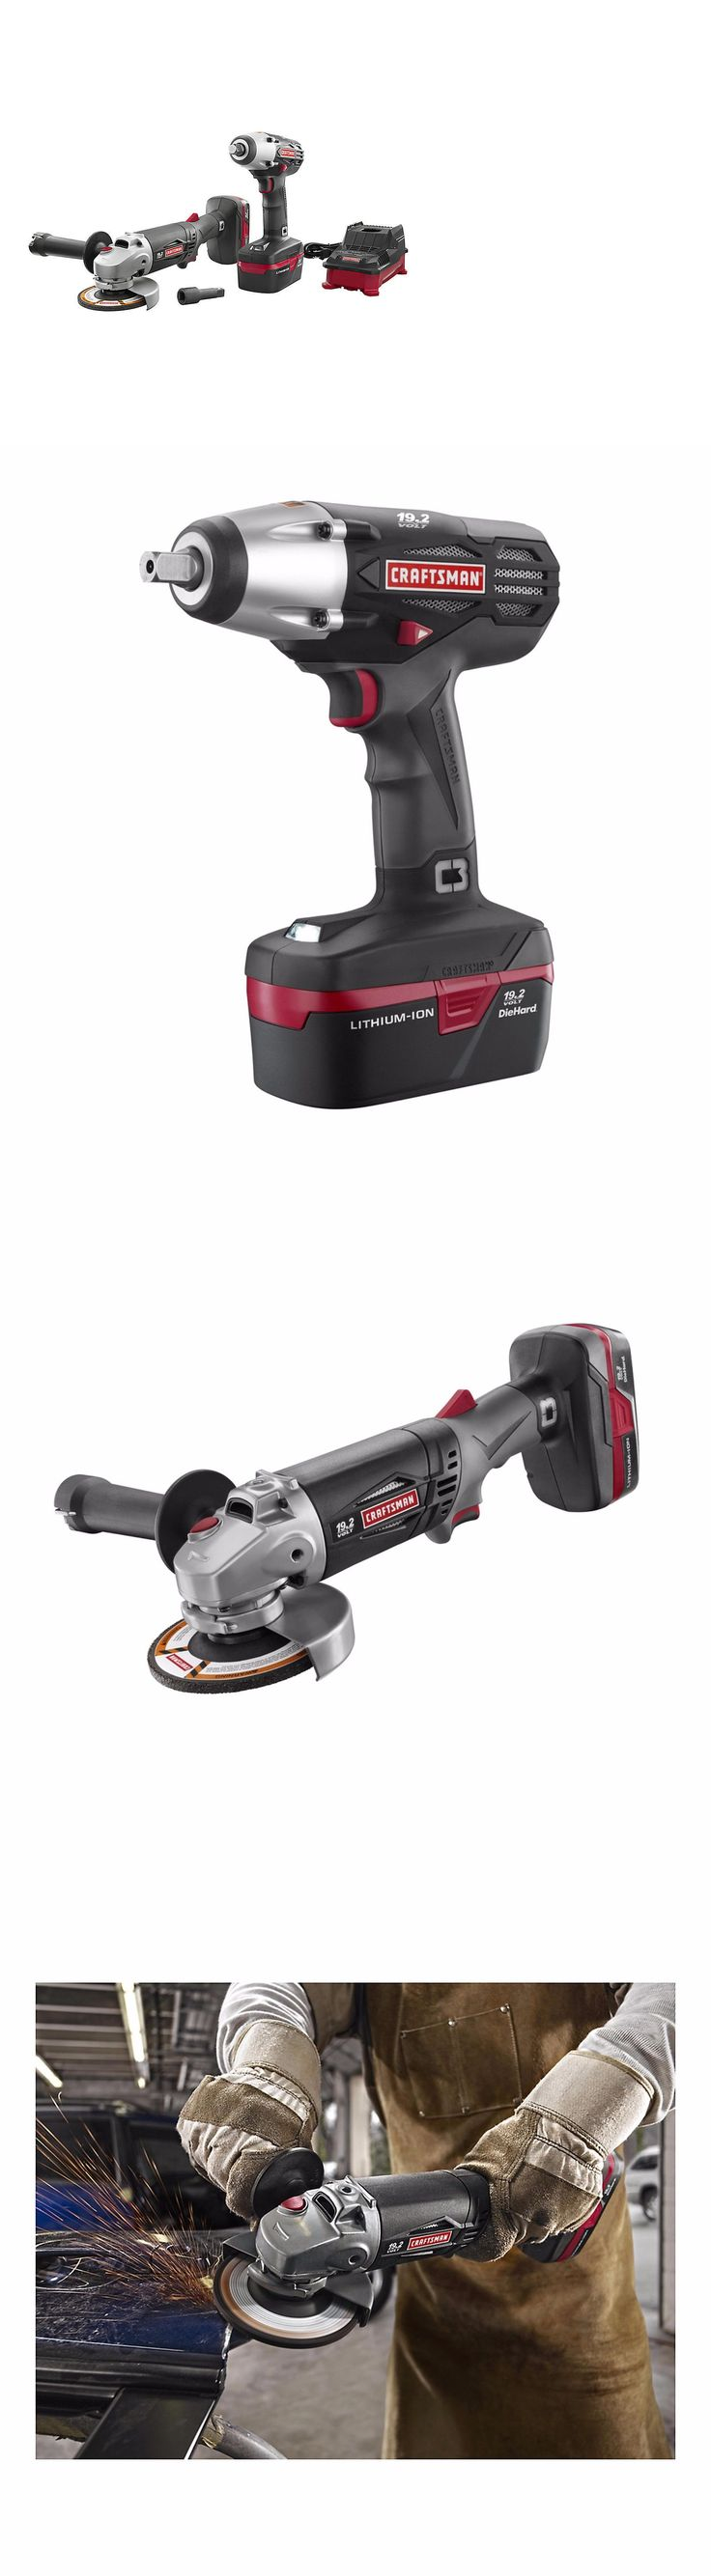 tools: New Craftsman C3 Lithium-Ion 1/2 Impact Wrench And Angle Grinder Kit -> BUY IT NOW ONLY: $124.99 on eBay!